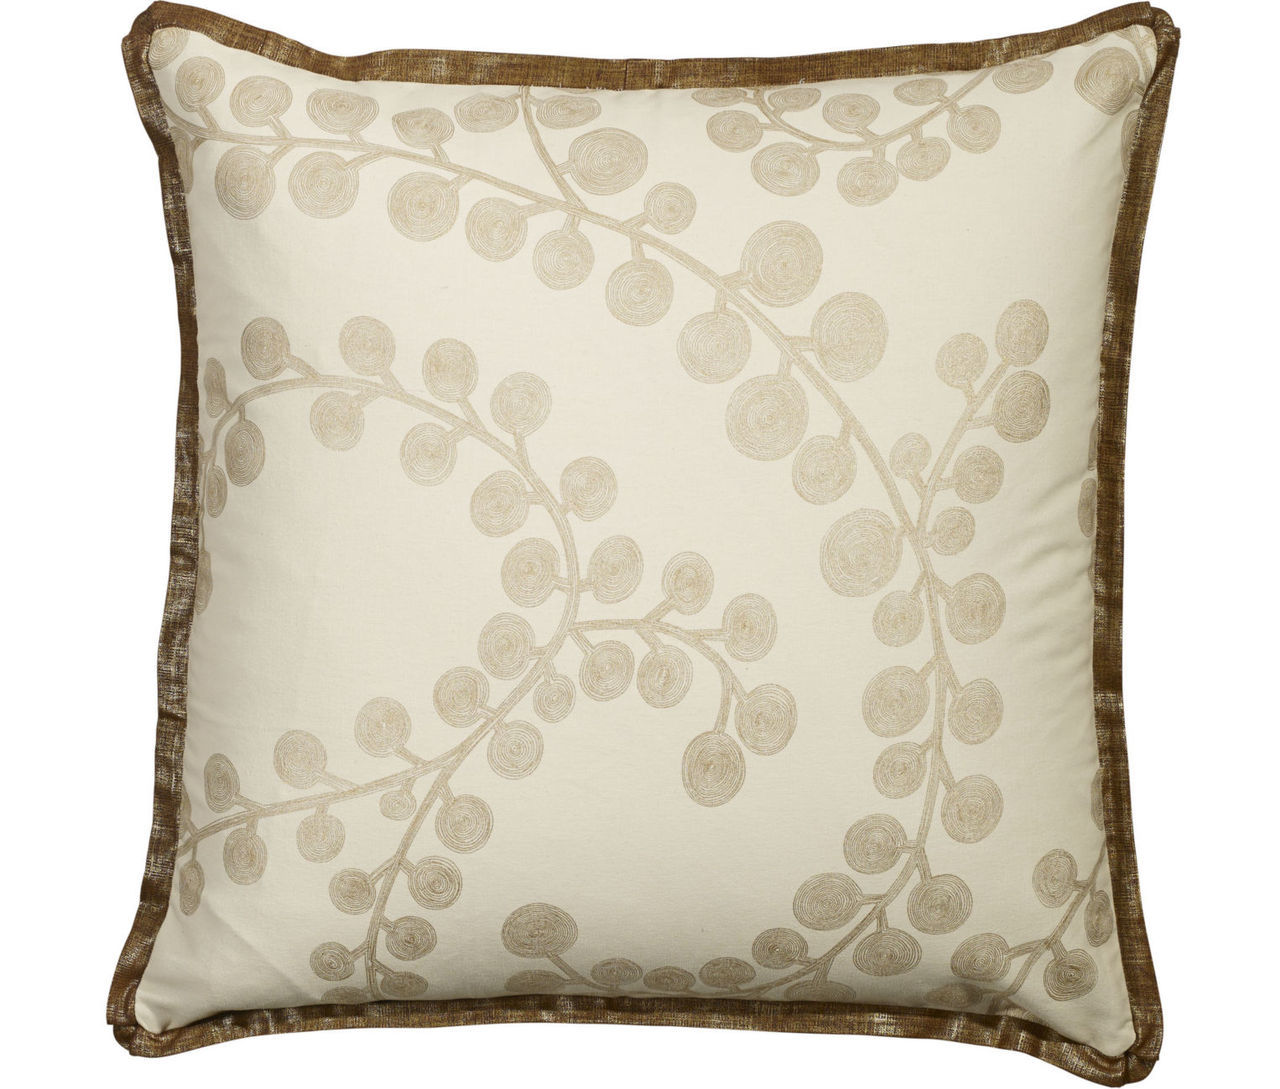 Radiance Copper Euro Sham Mystic Valley Traders - unique linens online